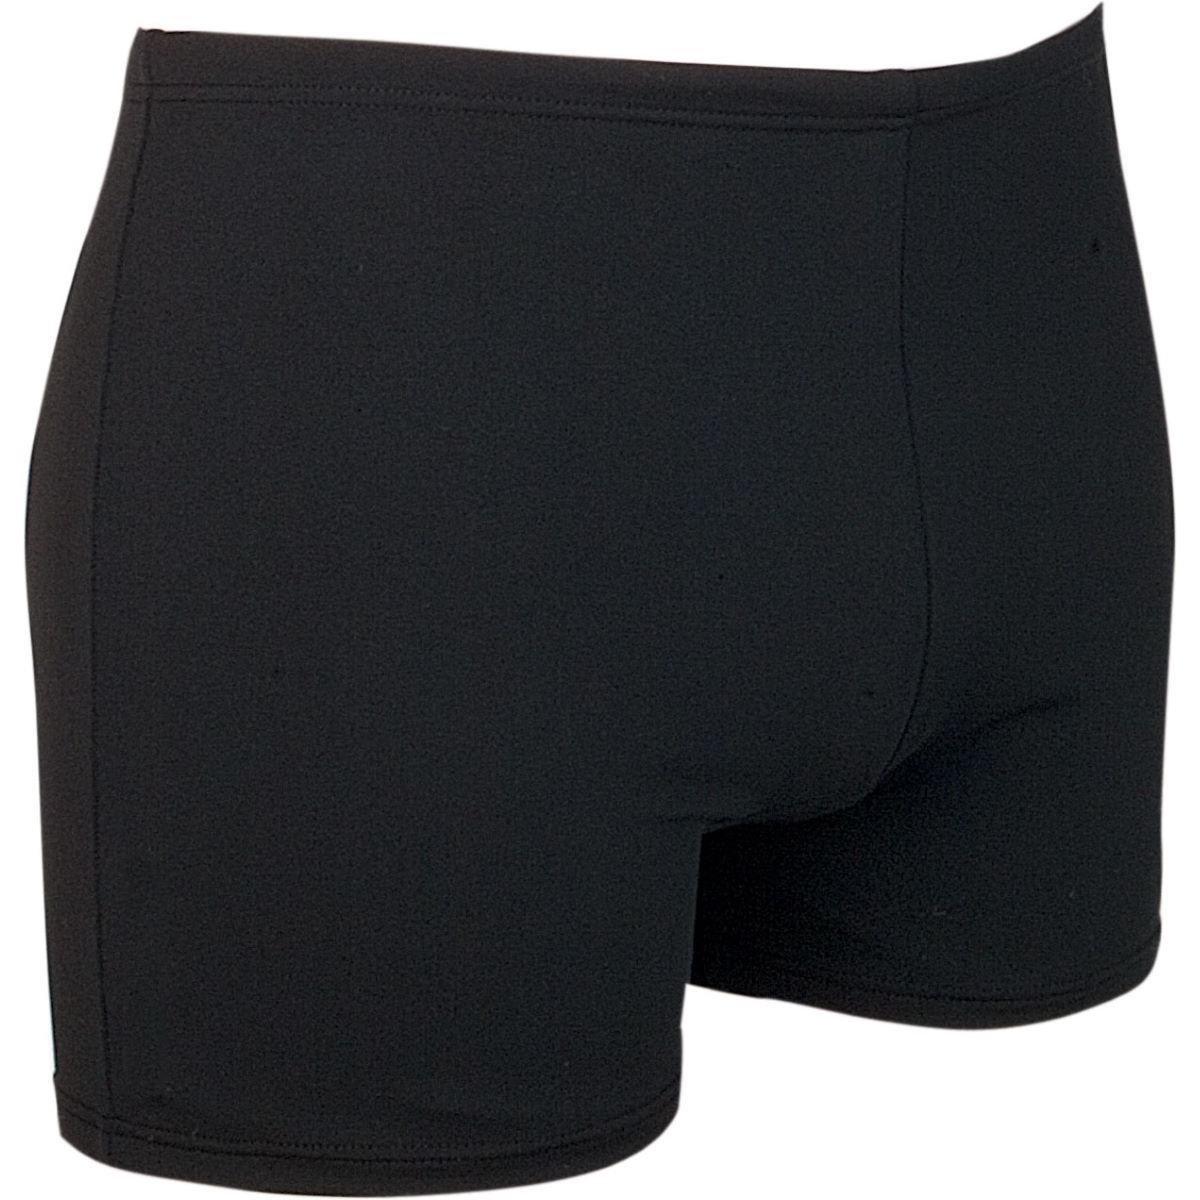 Zoggs Boys Cottesloe Hip  Racer - 8-9 Years Black  Swimming Shorts